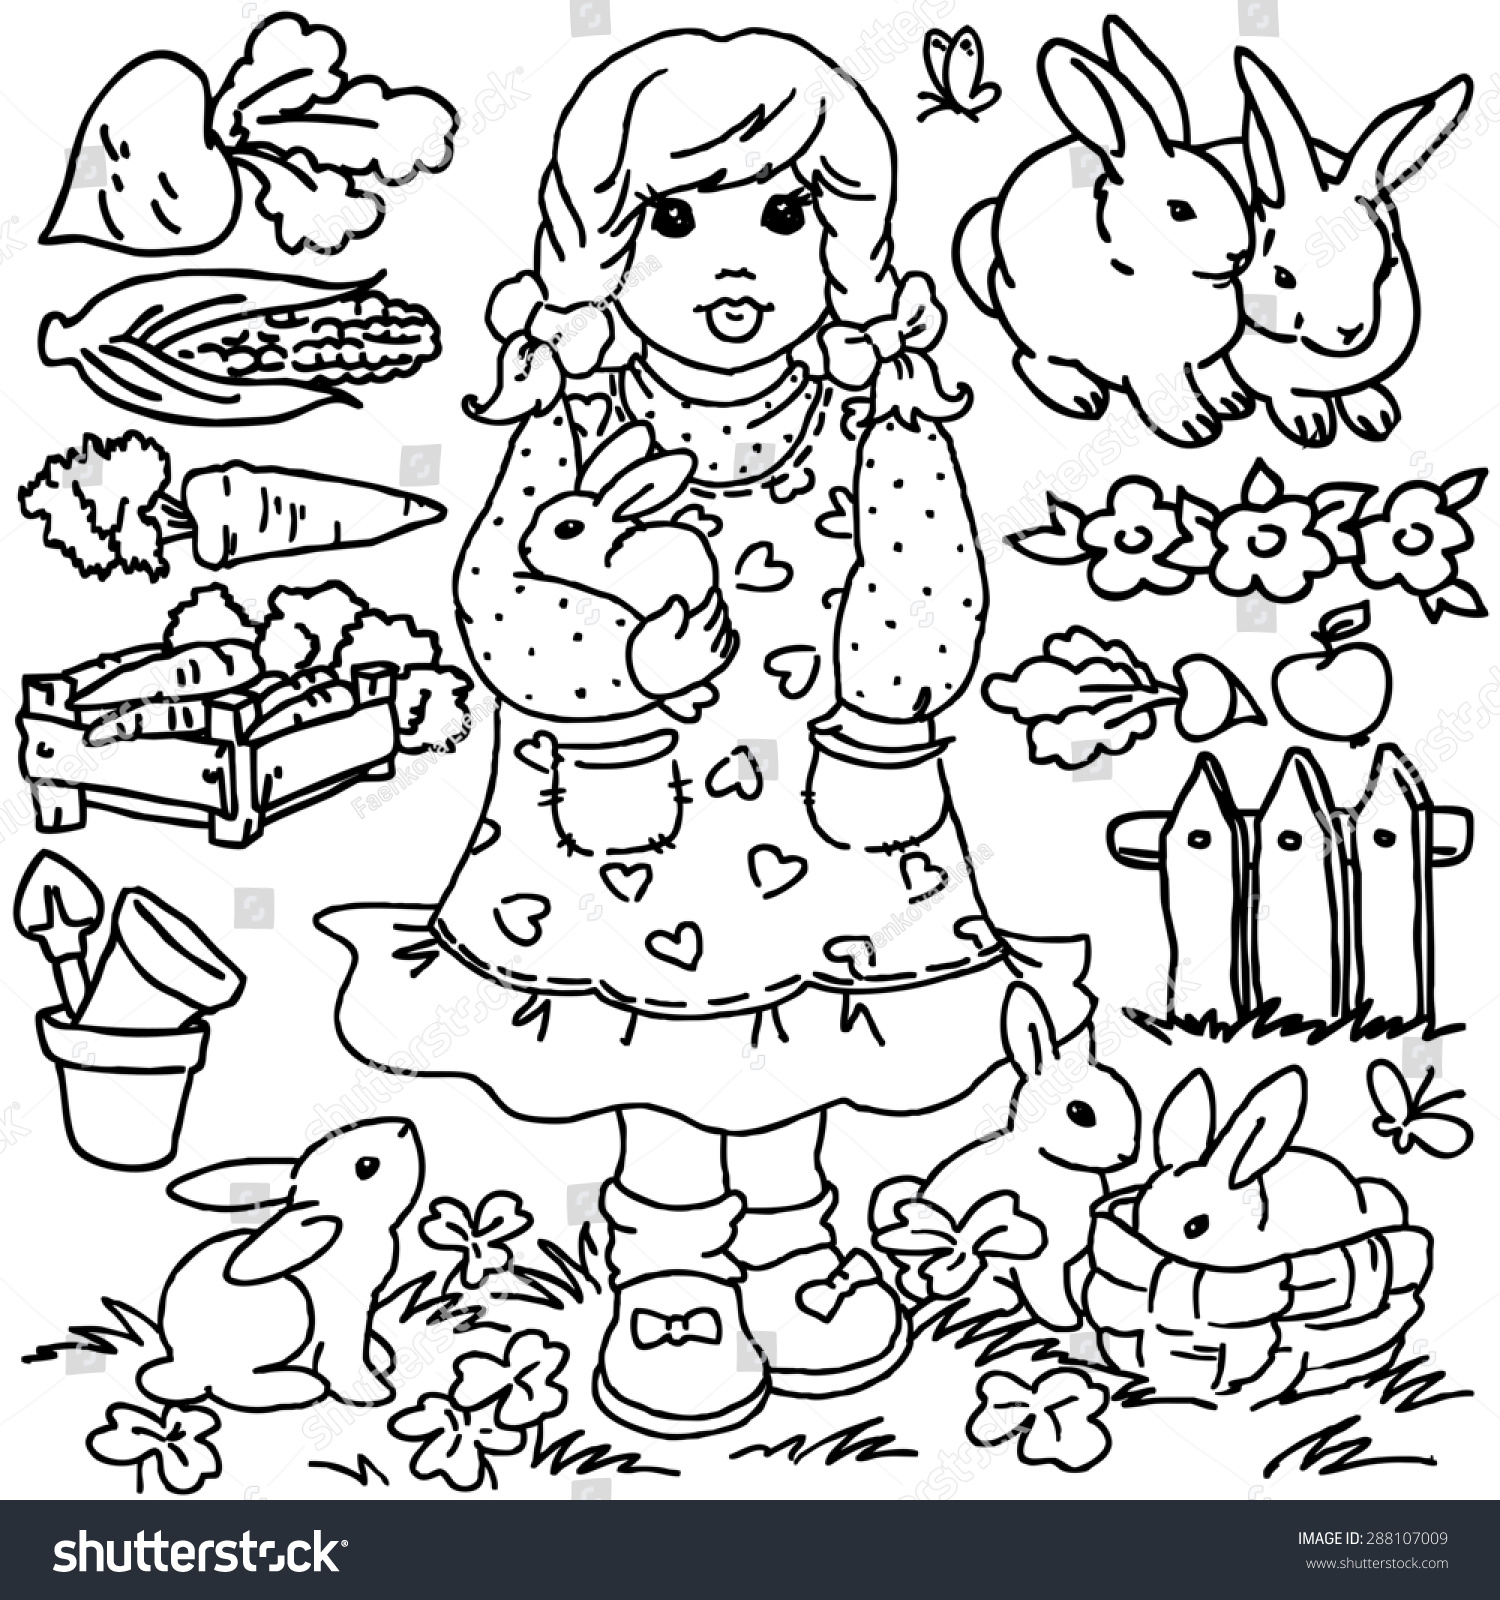 coloring book cartoon farm animals girl vegetables fruits garden tools and